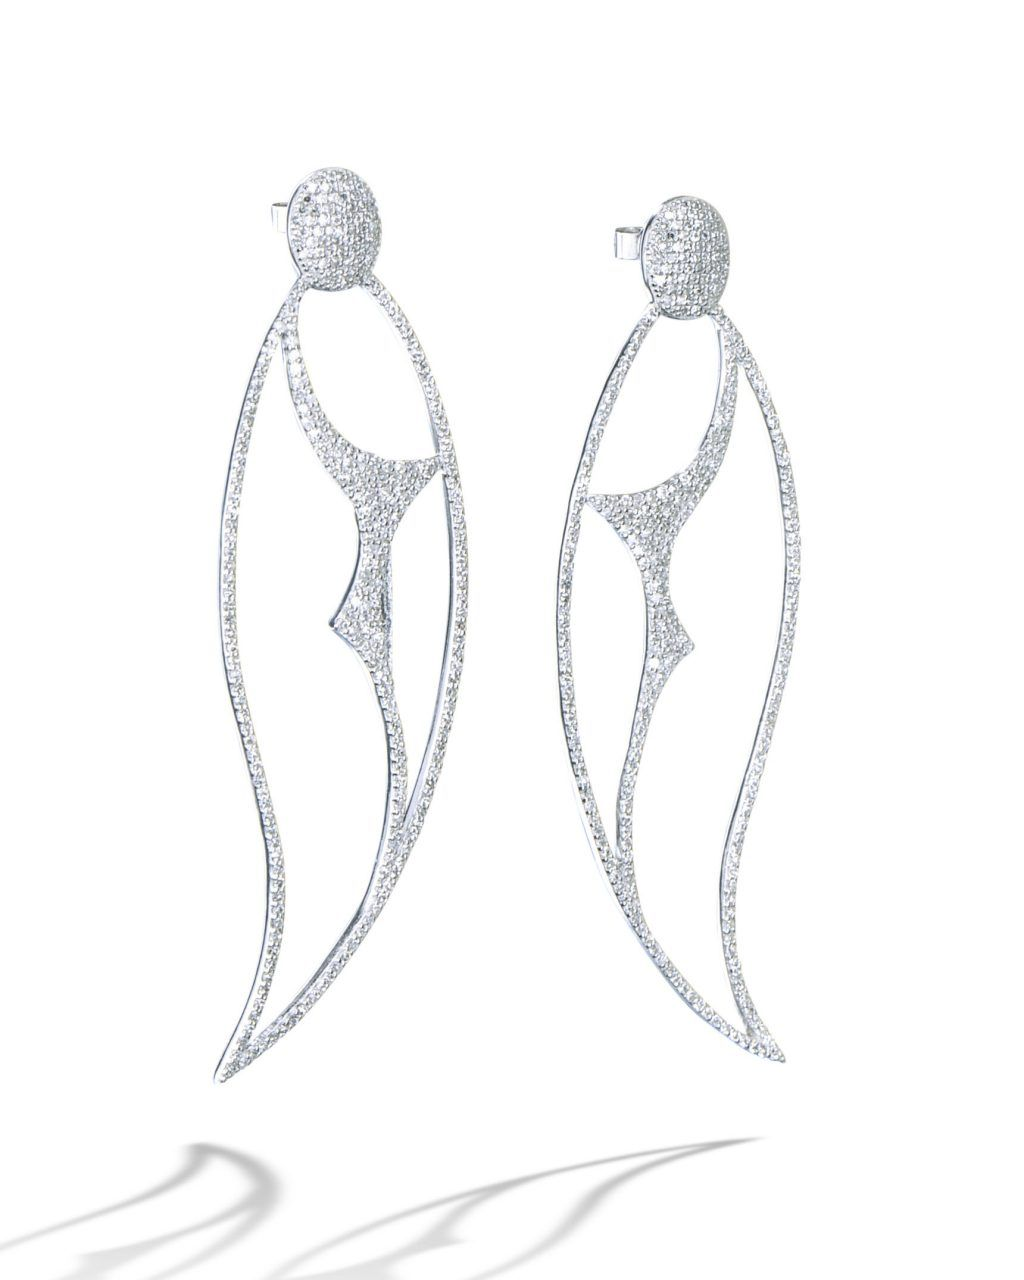 a91b3783e 18 karat white gold drop earrings set with 562 round brilliant cut diamonds  (1.93 carats total weight). Diamonds are G-H color and VS-SI clarity.